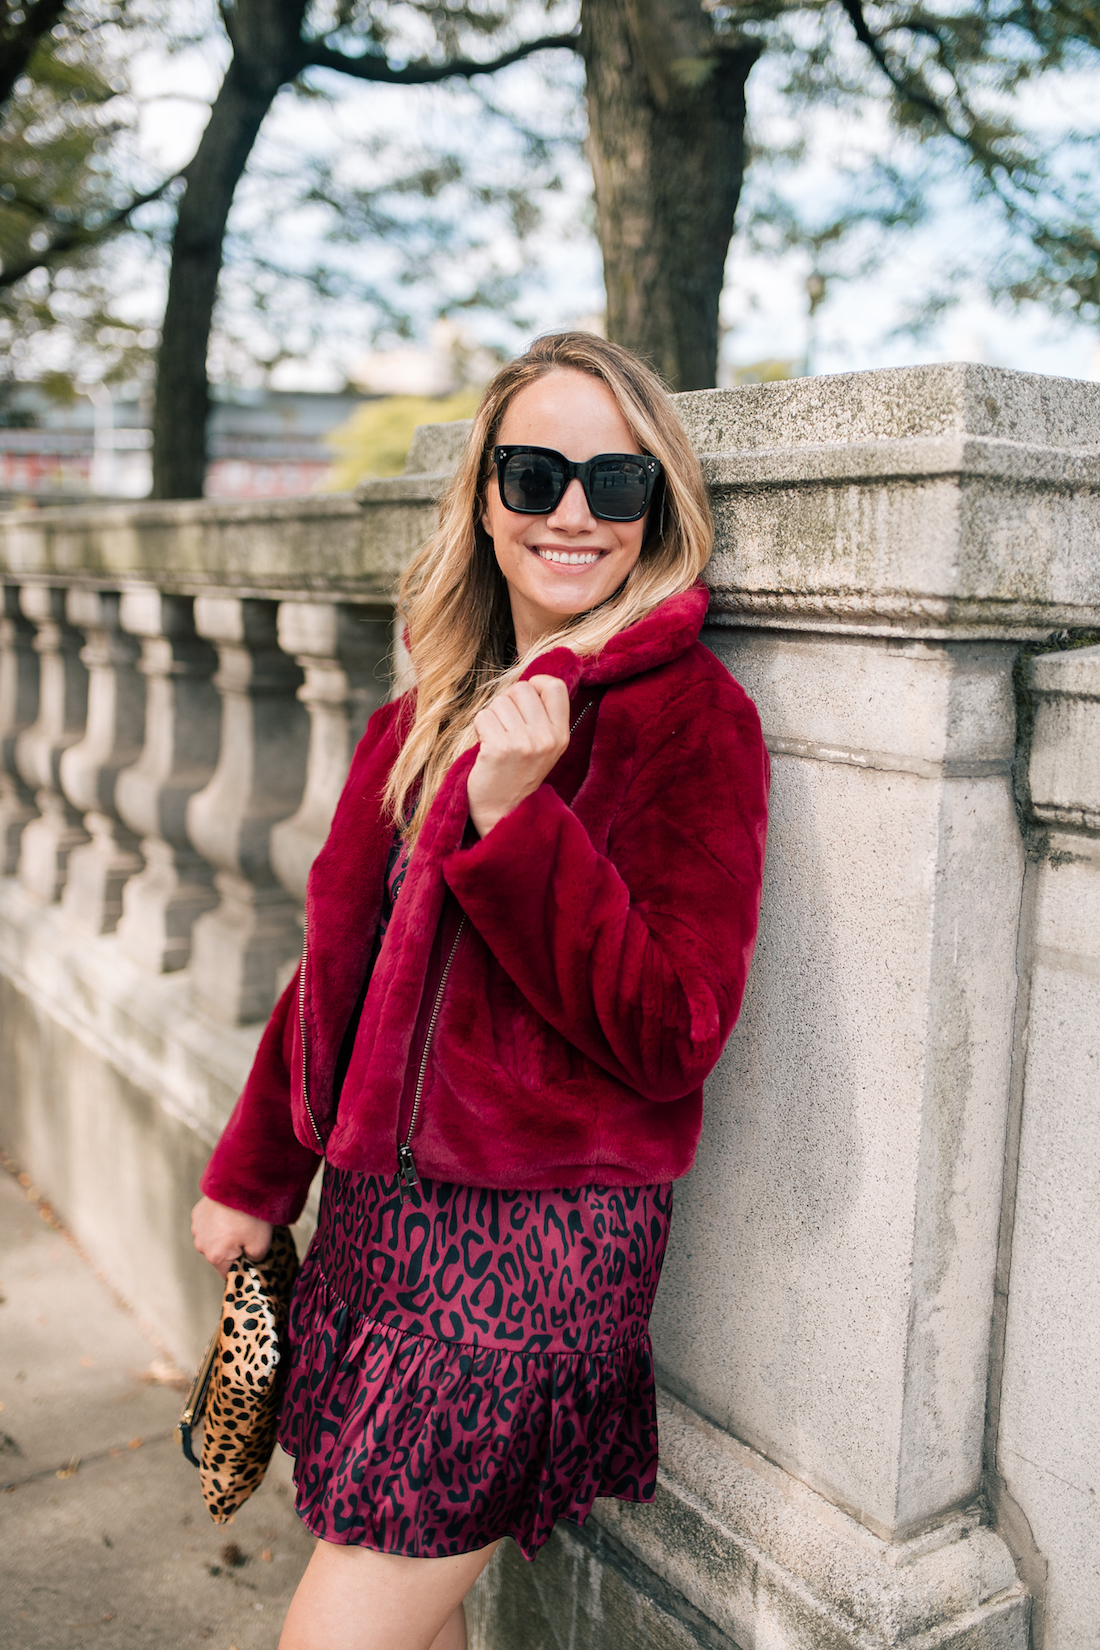 a girl with big shades and a red jacket on